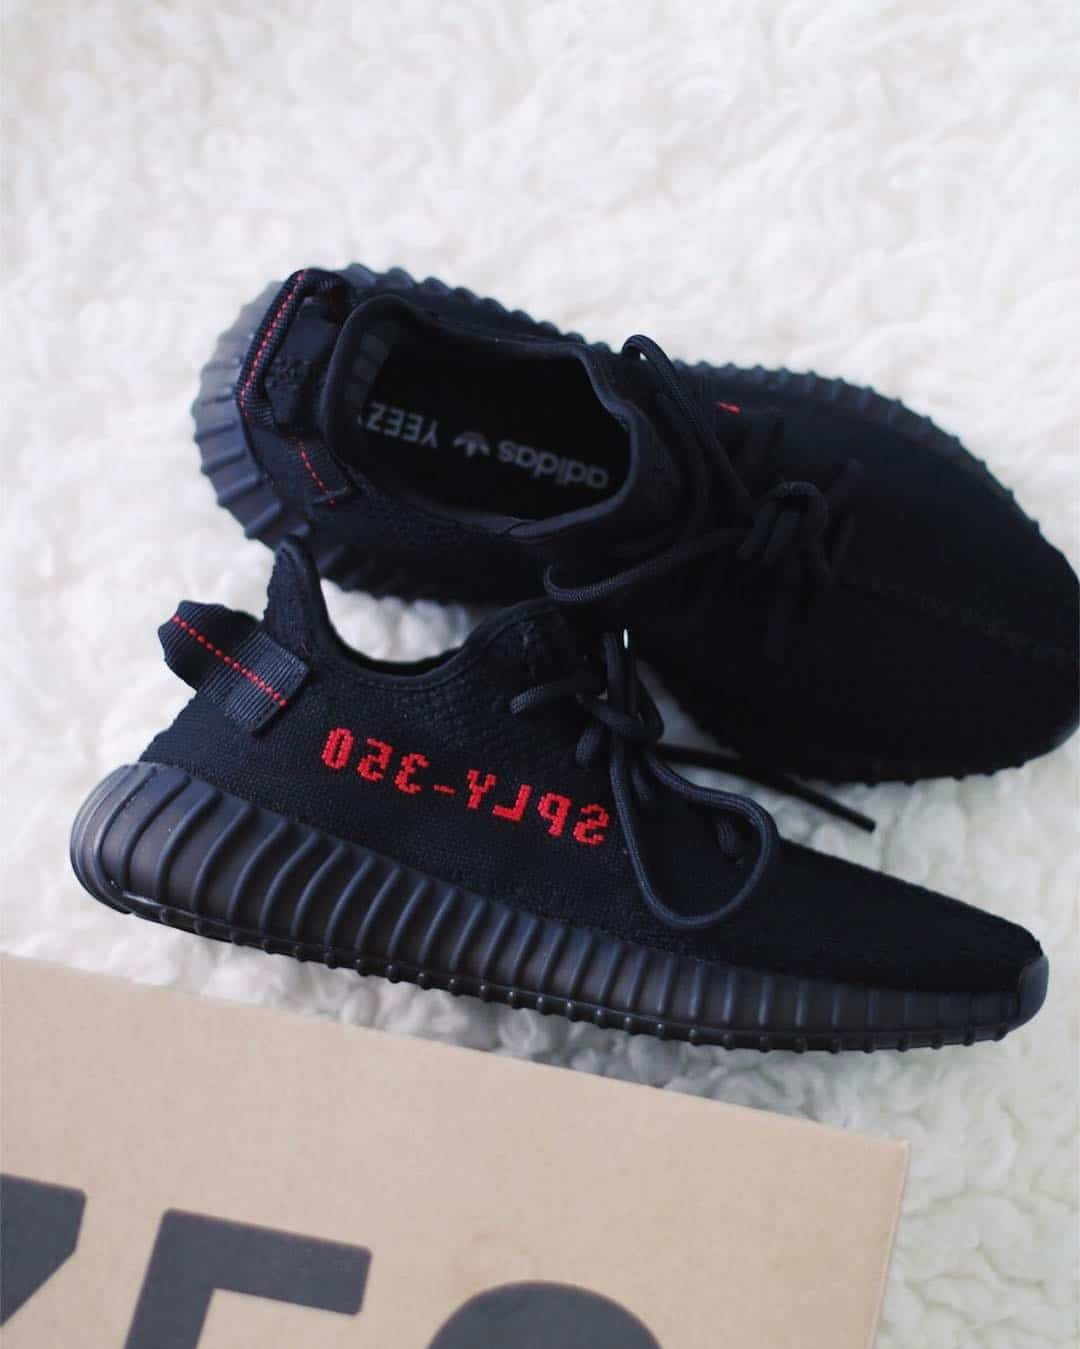 Adidas Yeezy Boost 350 v2 Bred Sneakers